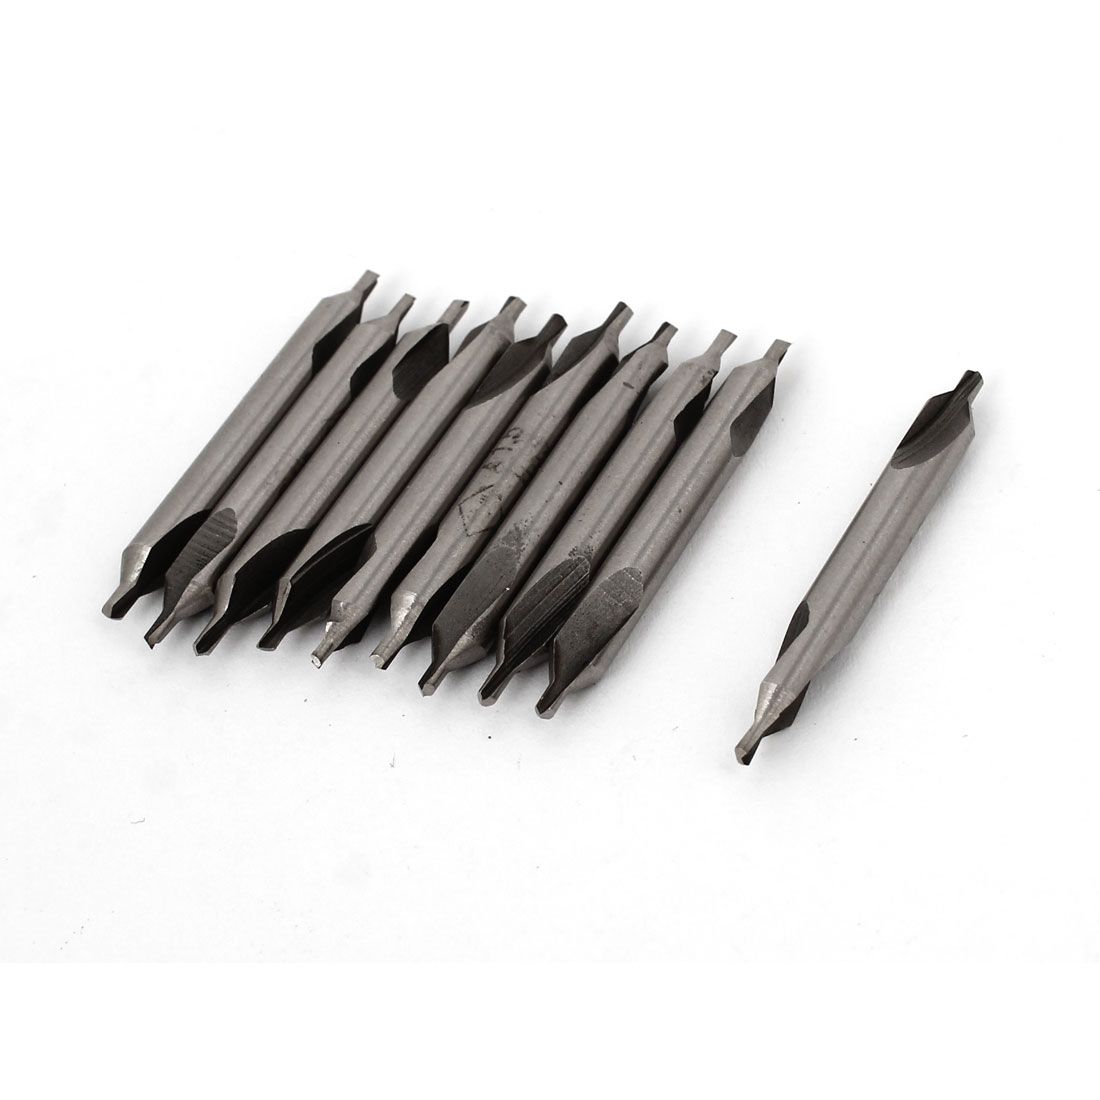 10 Pcs HSS 4mm Shank 1.5mm Dia Tip Double Ended Center Drill Bit